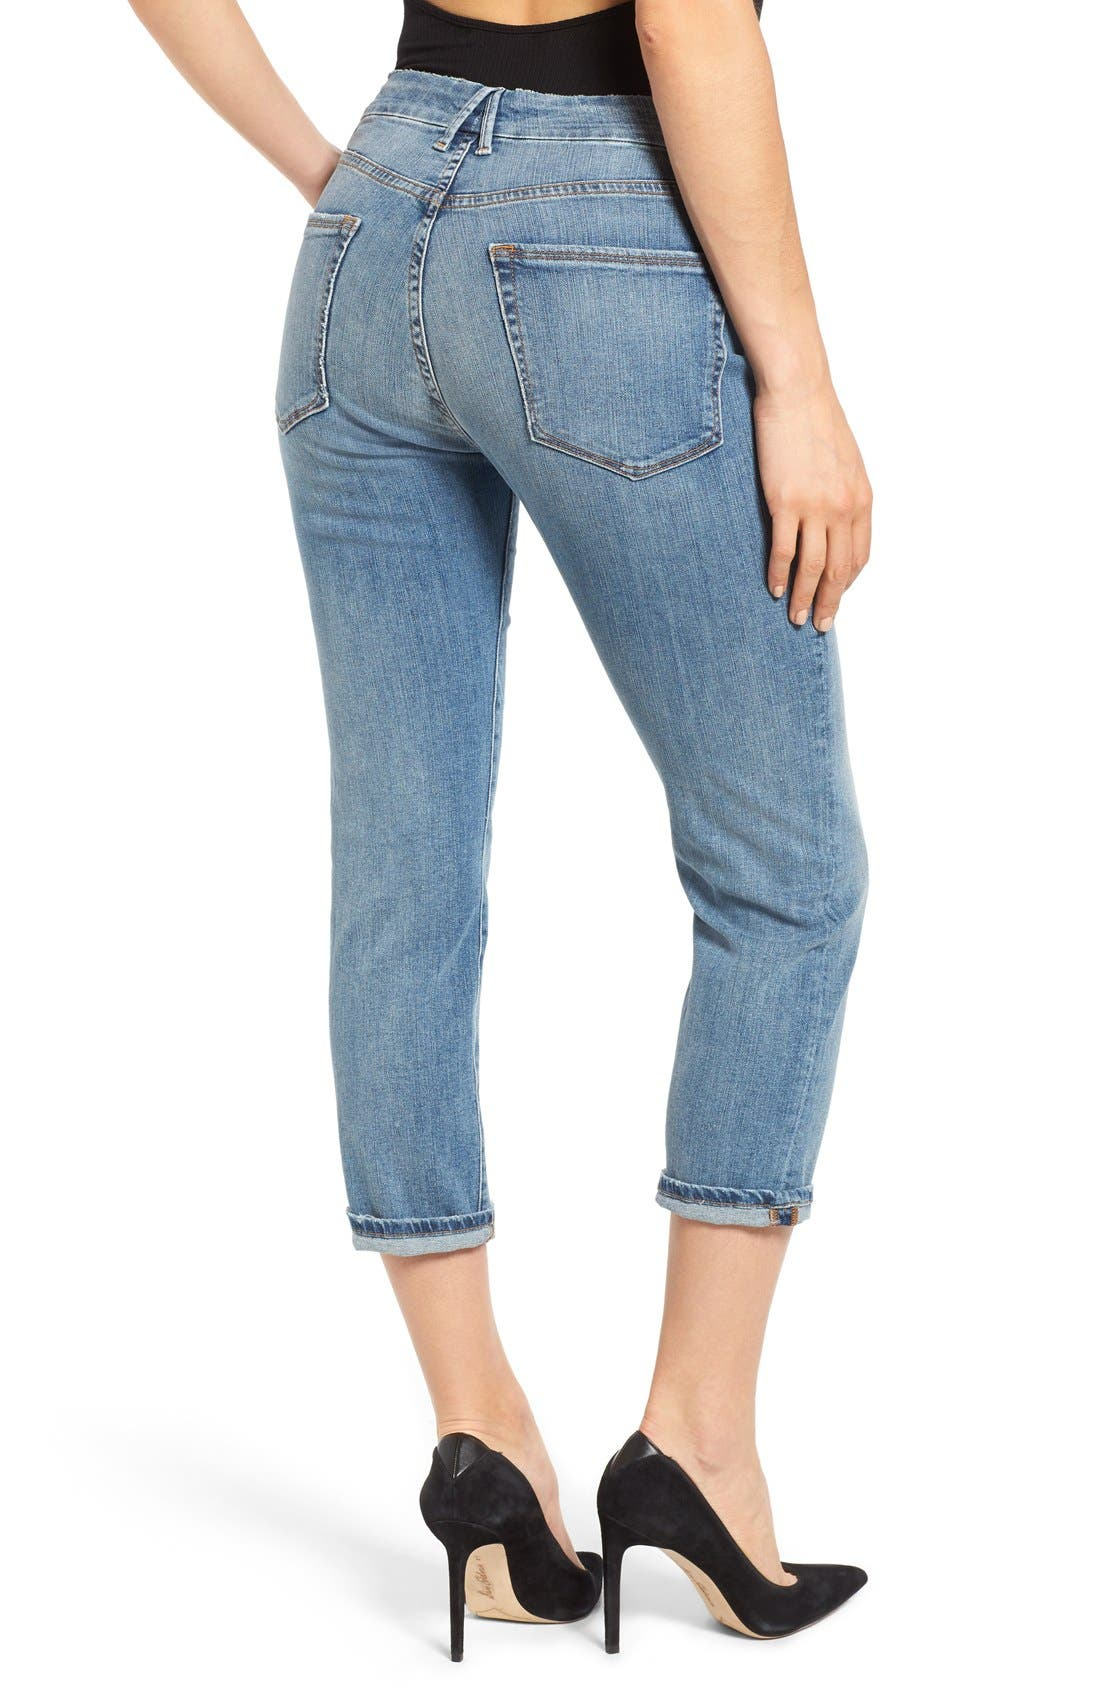 Alternate Image 2  - Good American Good Cuts High Rise Boyfriend Jeans (Blue 012) (Extended Sizes)